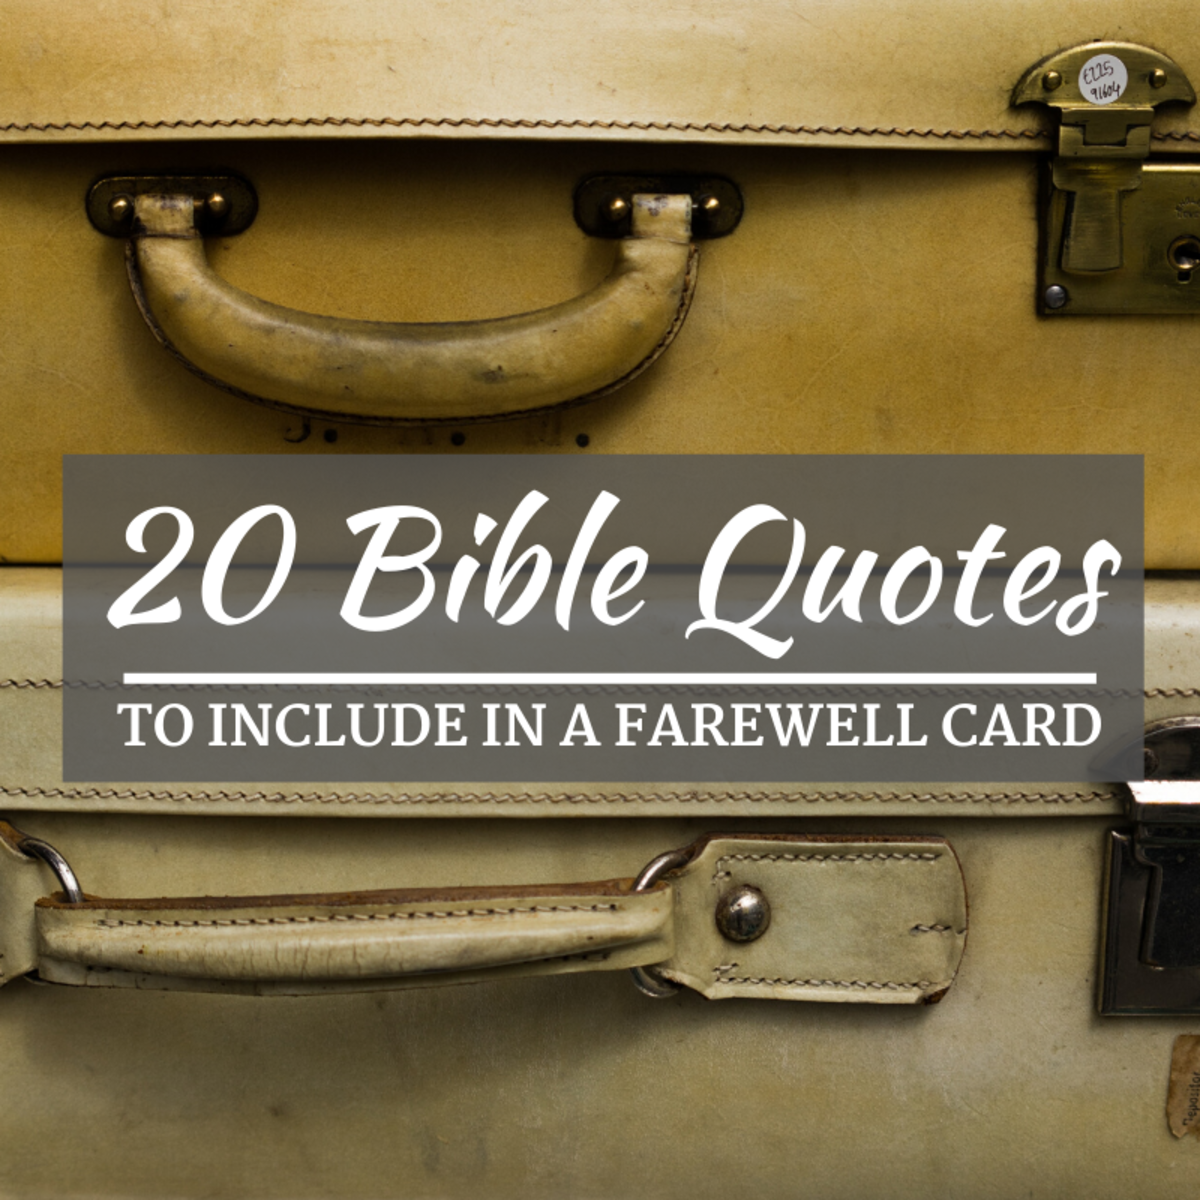 20 Bible Quotes for Your Farewell or Goodbye Card